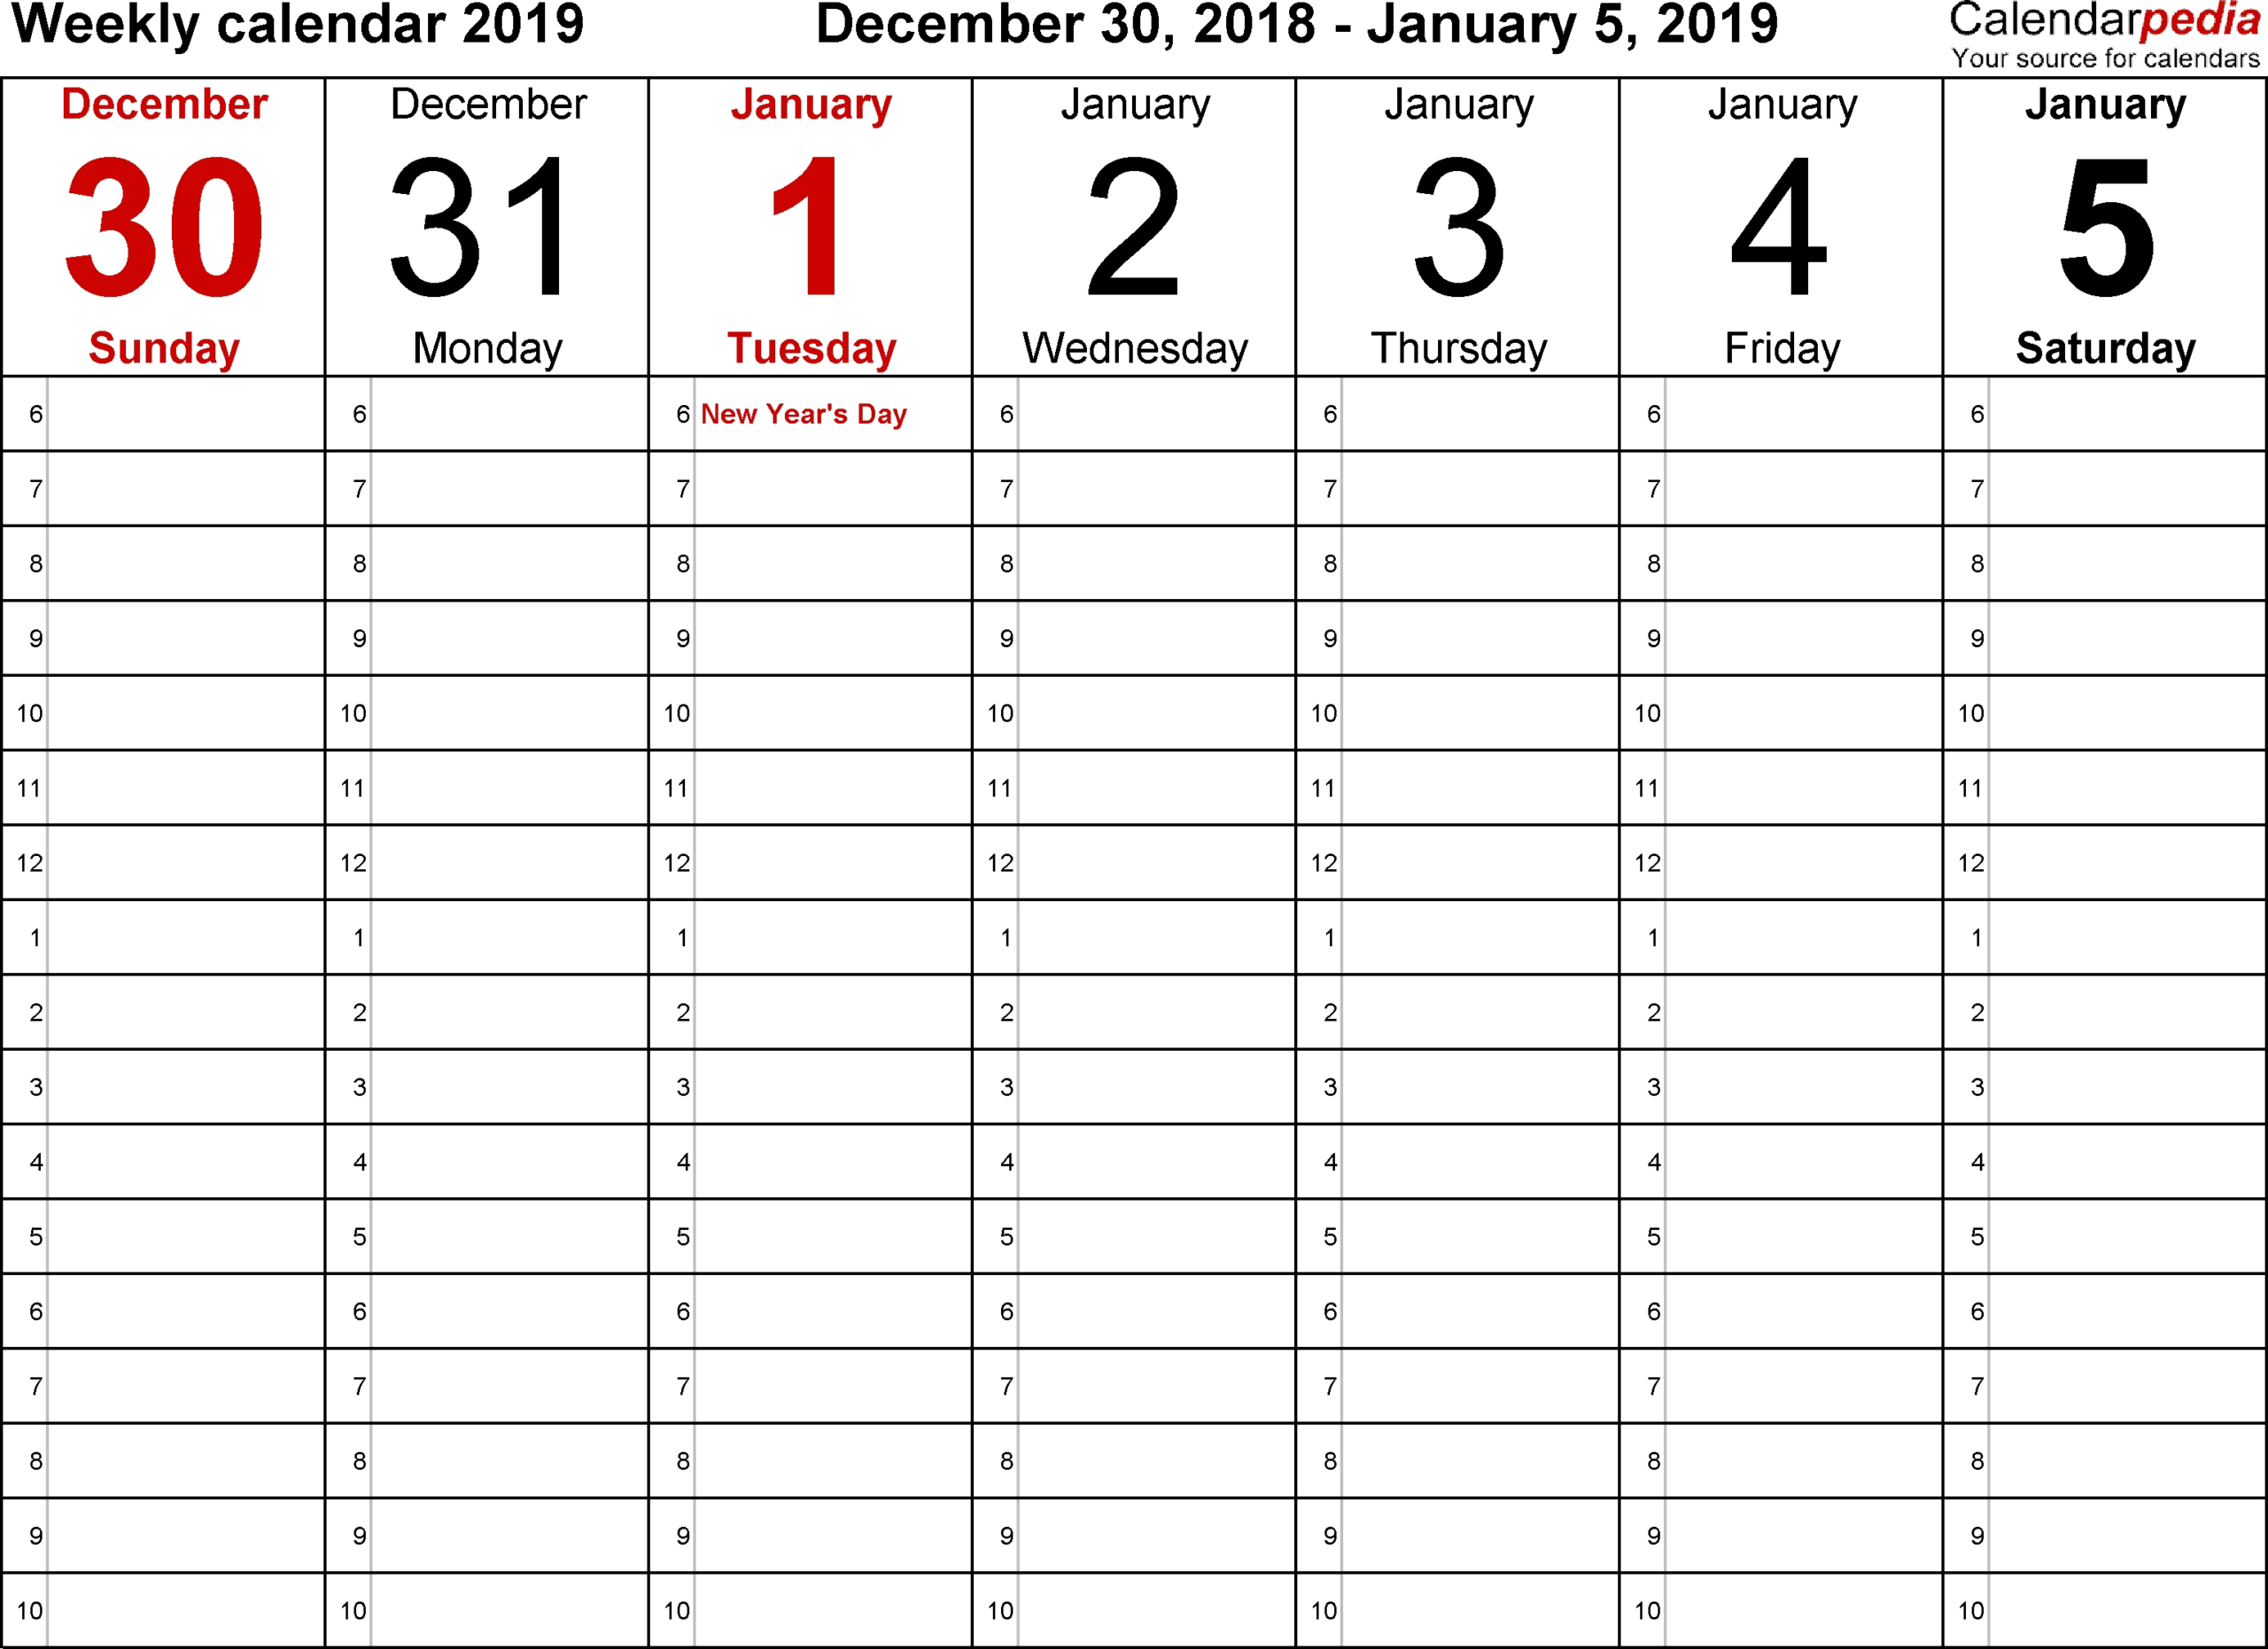 5 Day Week Blank Calendar With Time Slots Printable inside Calendar Template With Time Slots